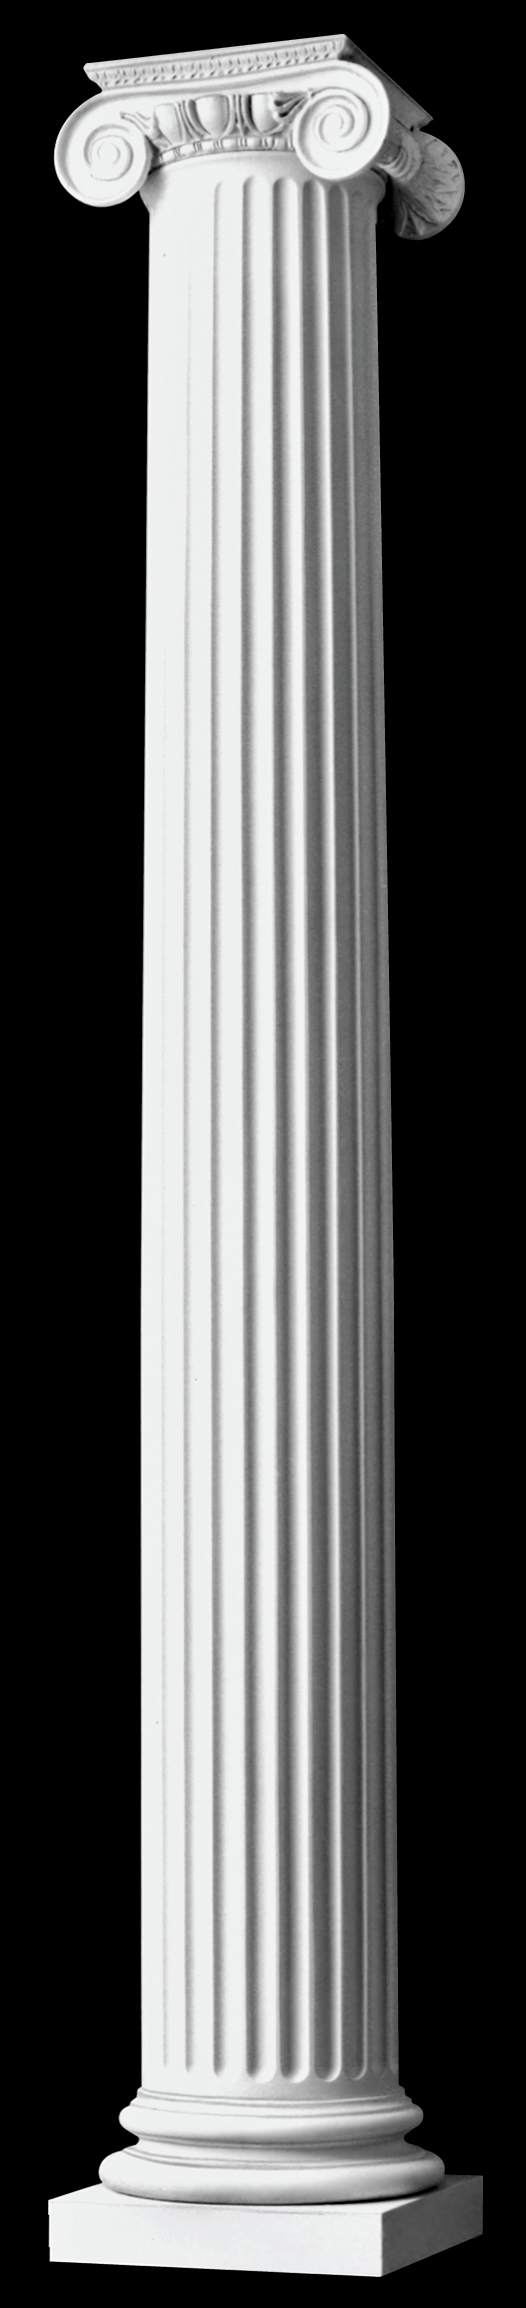 Authentic Replication Roman Ionic Wood Columns Fluted Columns Chadsworth Columns